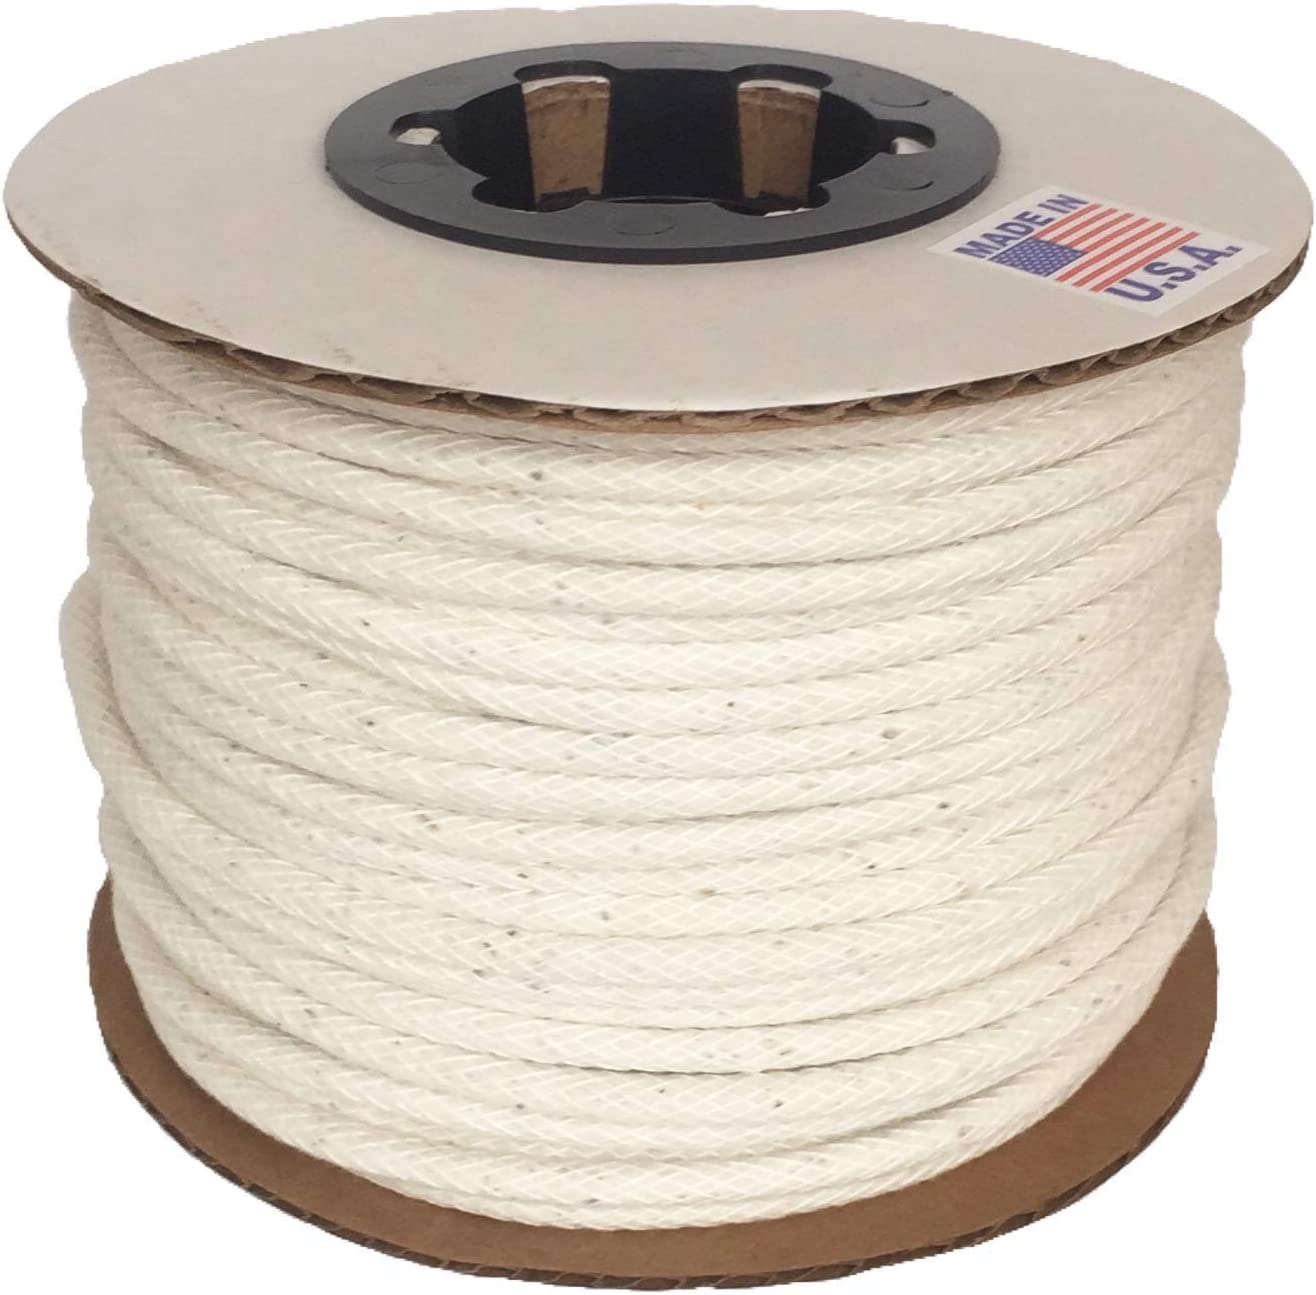 Cotton Piping Cord Size 1 3//16 6//32 6//32 #1-3//16 10 Yards